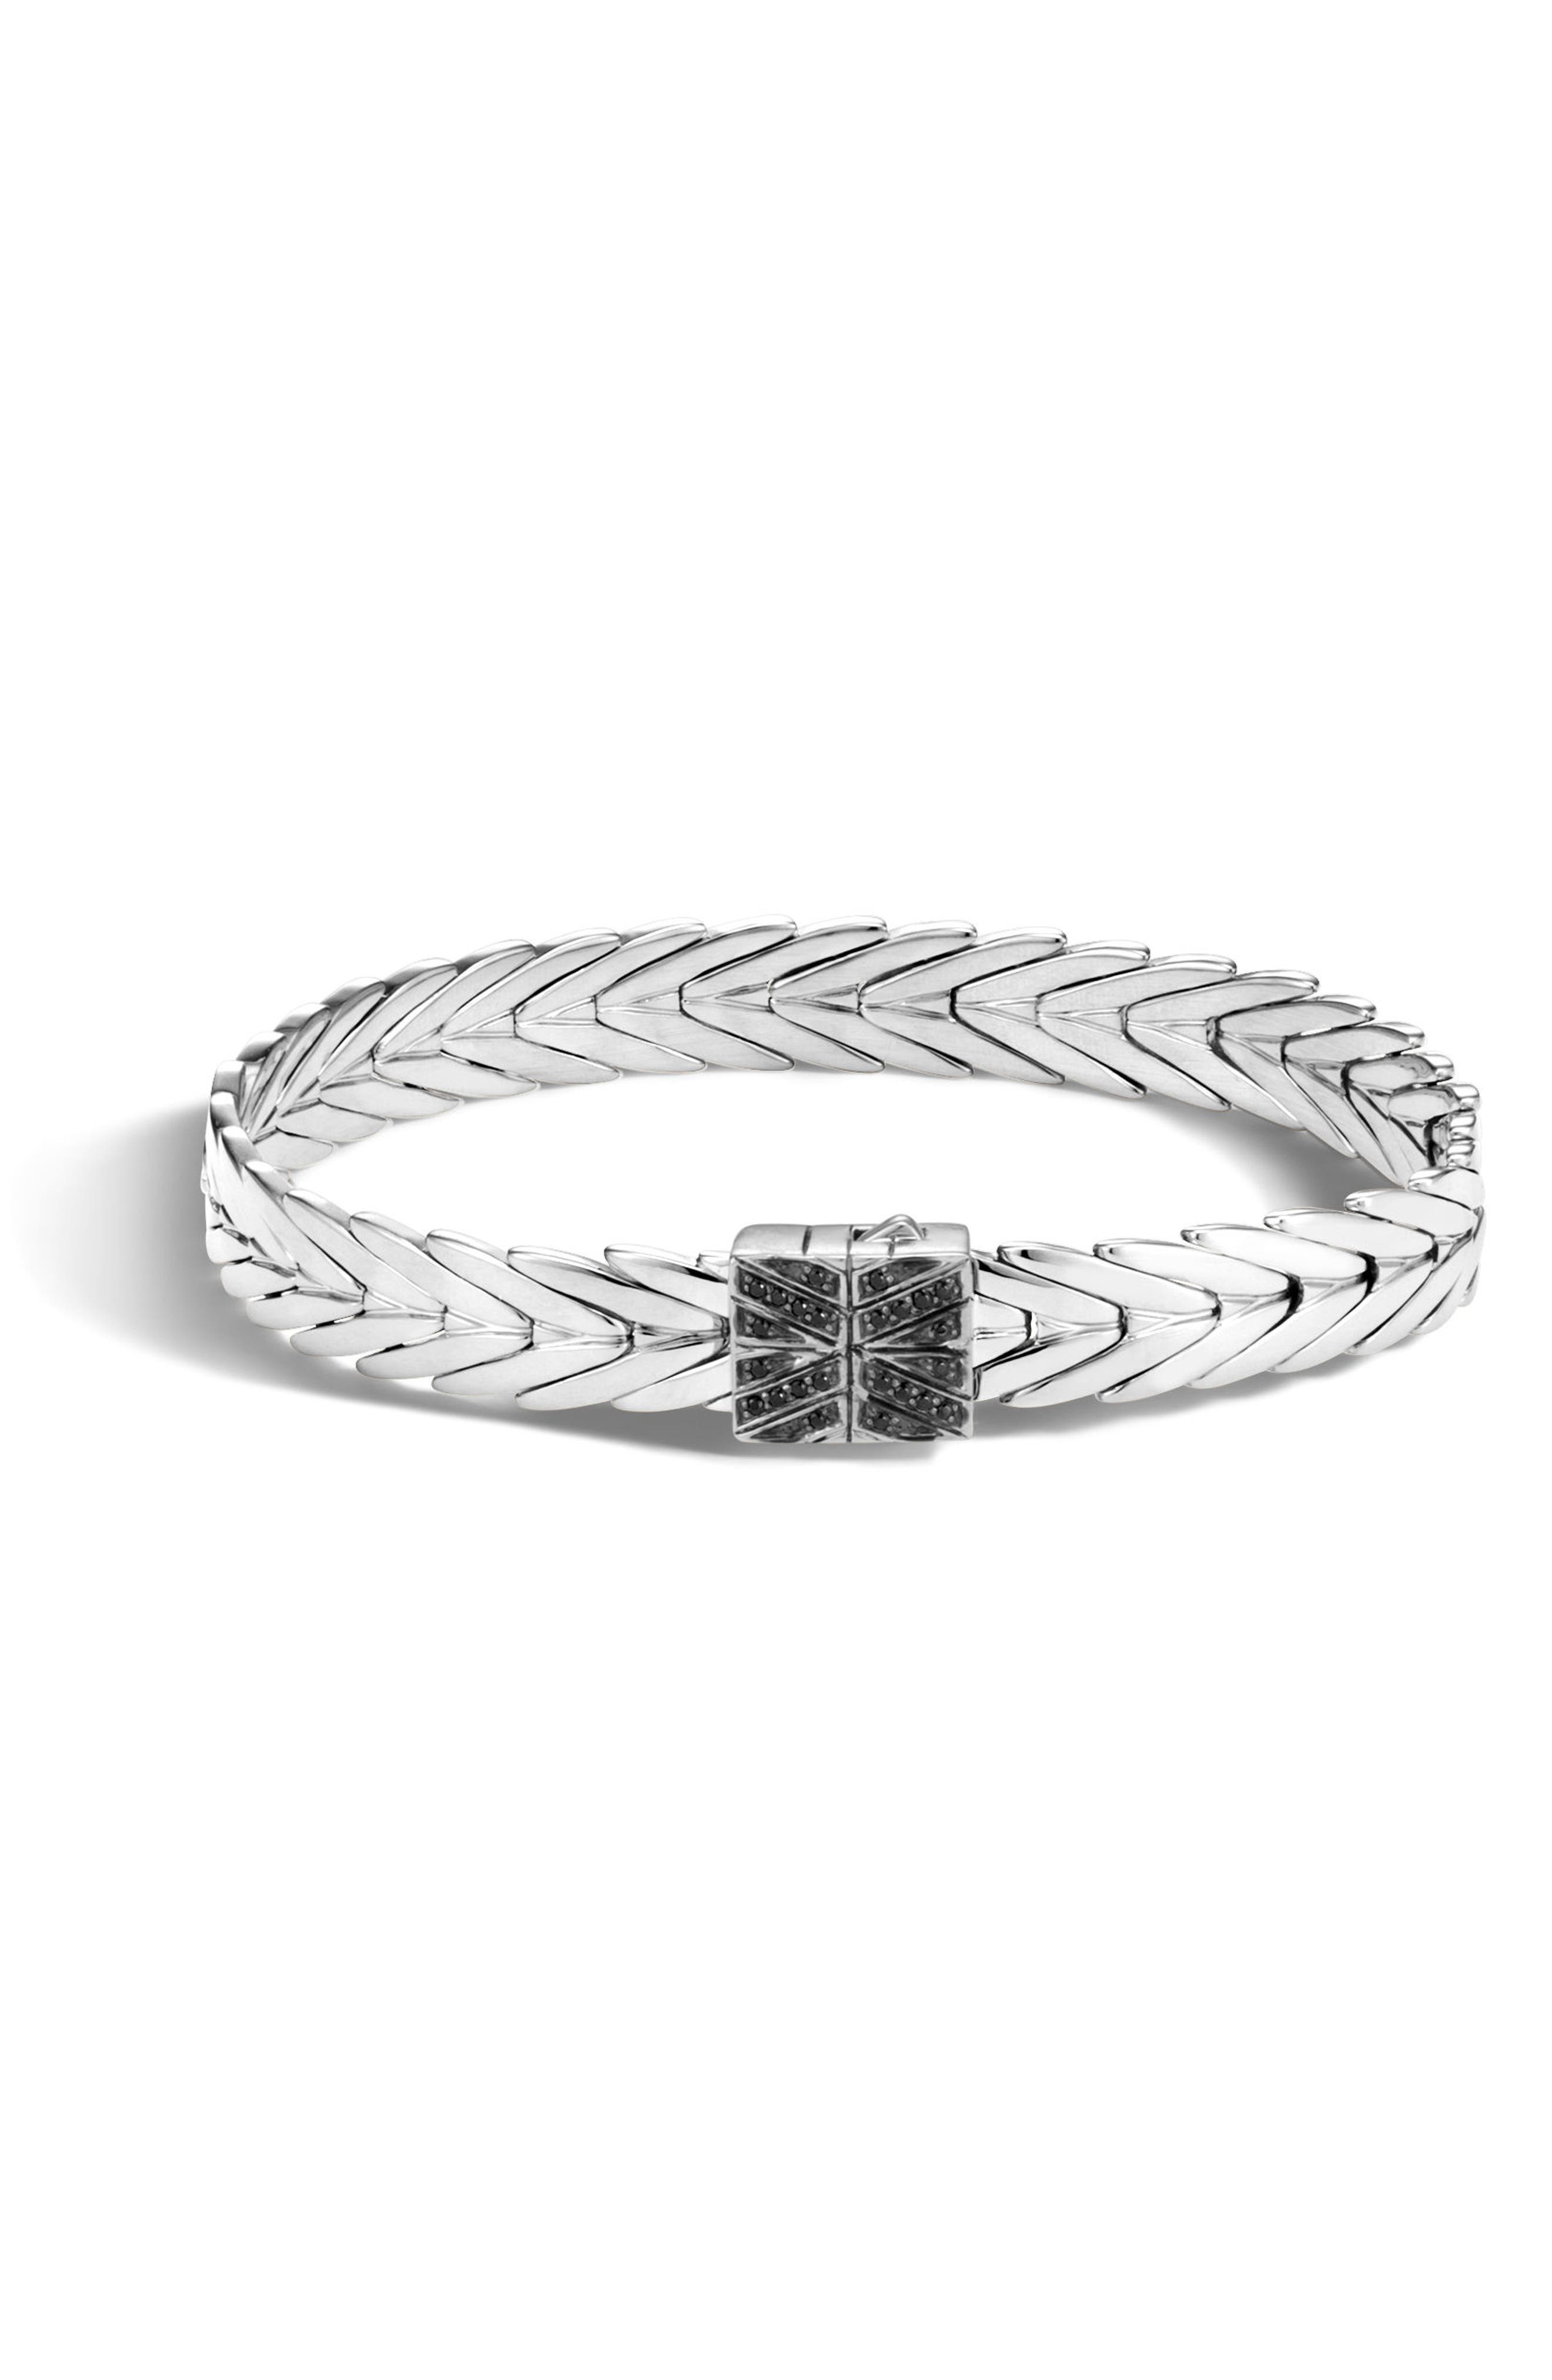 Modern Chain Bracelet with Black Spinel,                             Main thumbnail 1, color,                             SILVER/ BLACK SPINEL